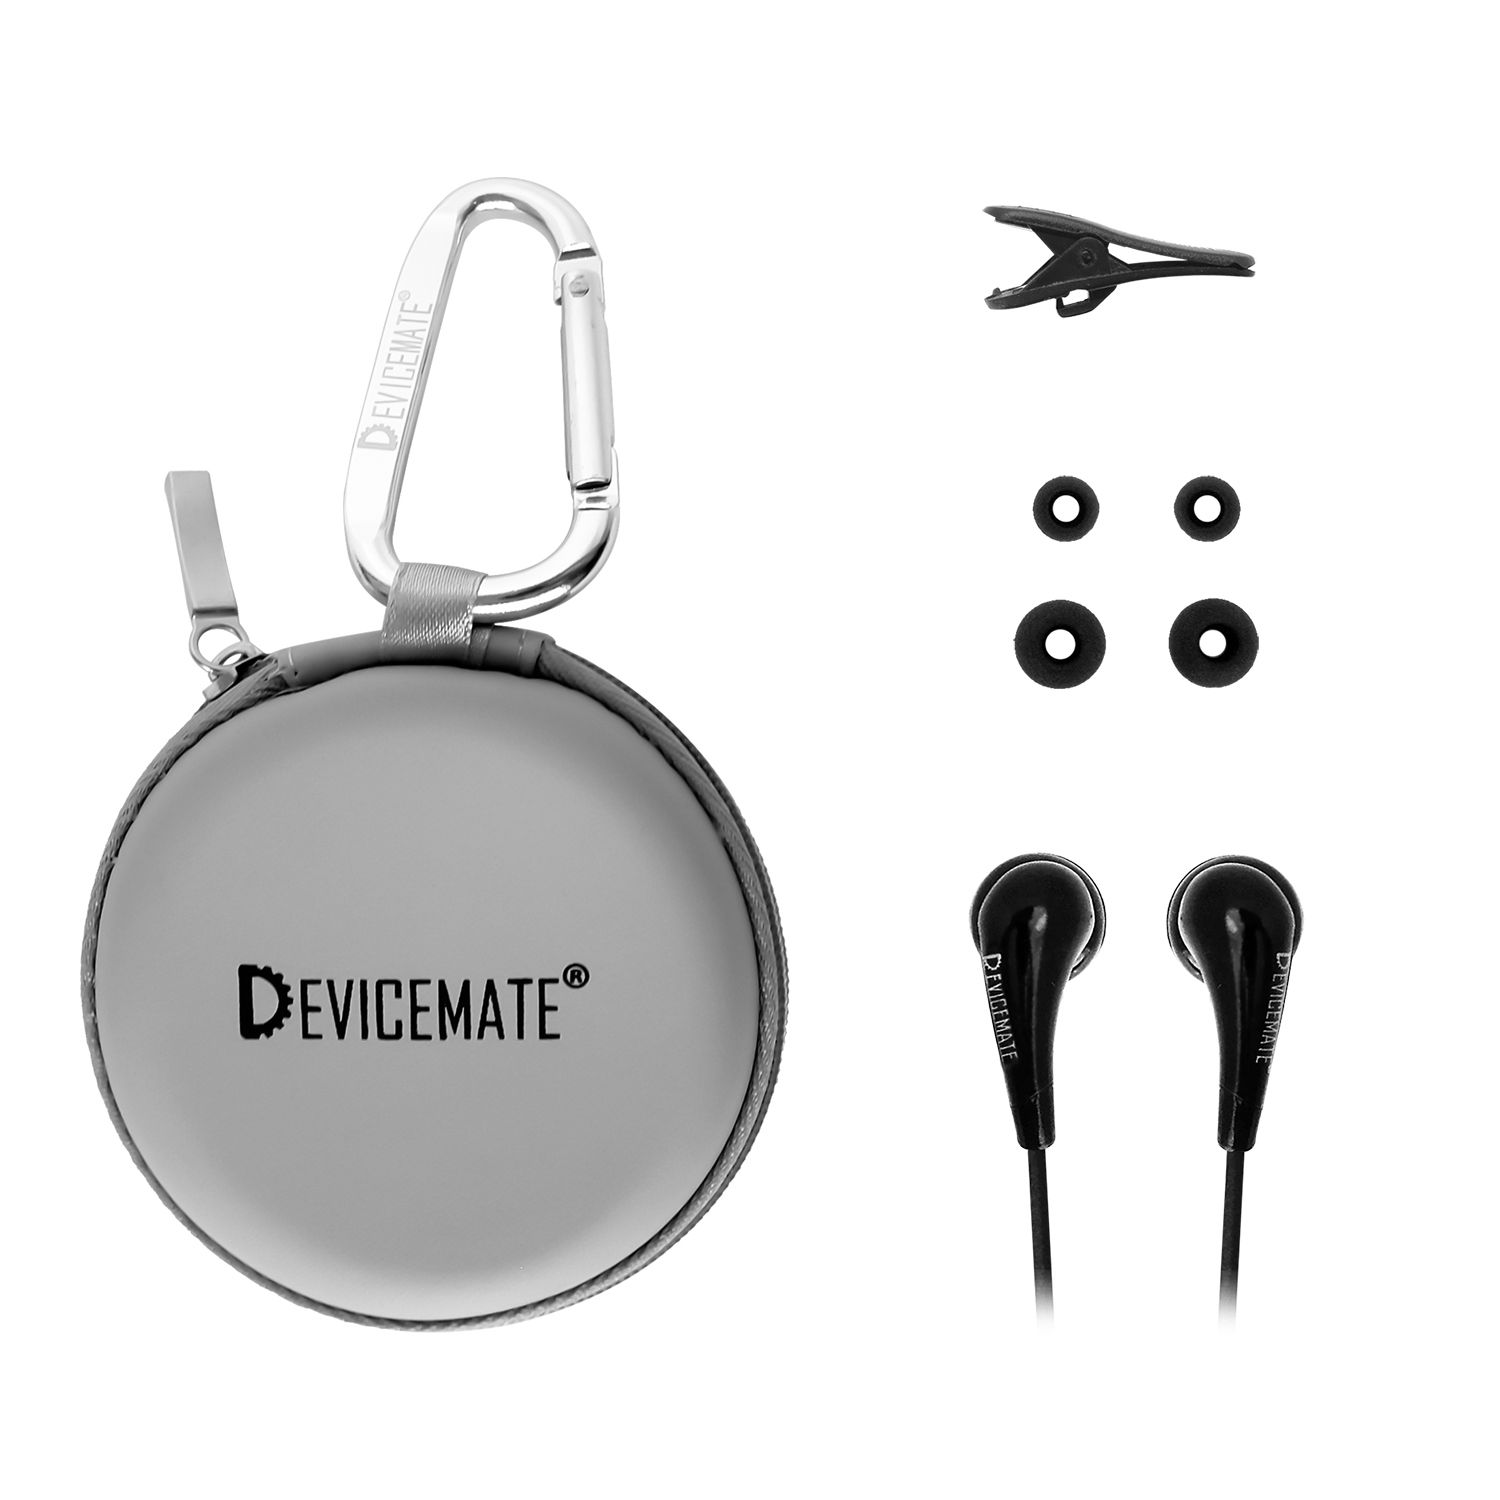 Devicemate SD 255-SLG In-Ear Stereo Earphones [Slate Gray] Case